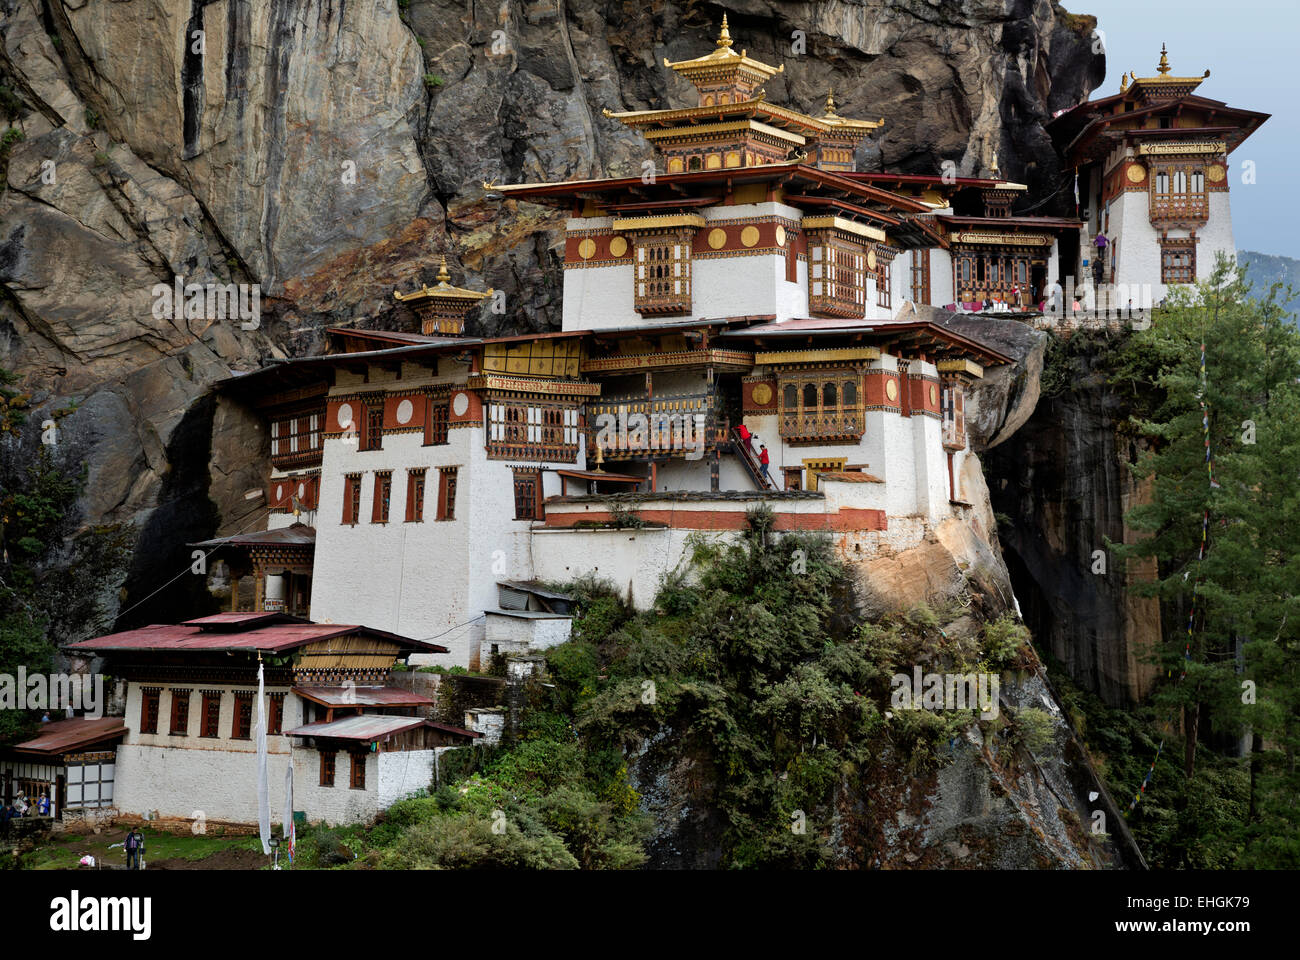 BHUTAN - Taktshang Goemba, (the Tiger's Nest Monastery), perched on the side of a cliff high above the Paro - Stock Image